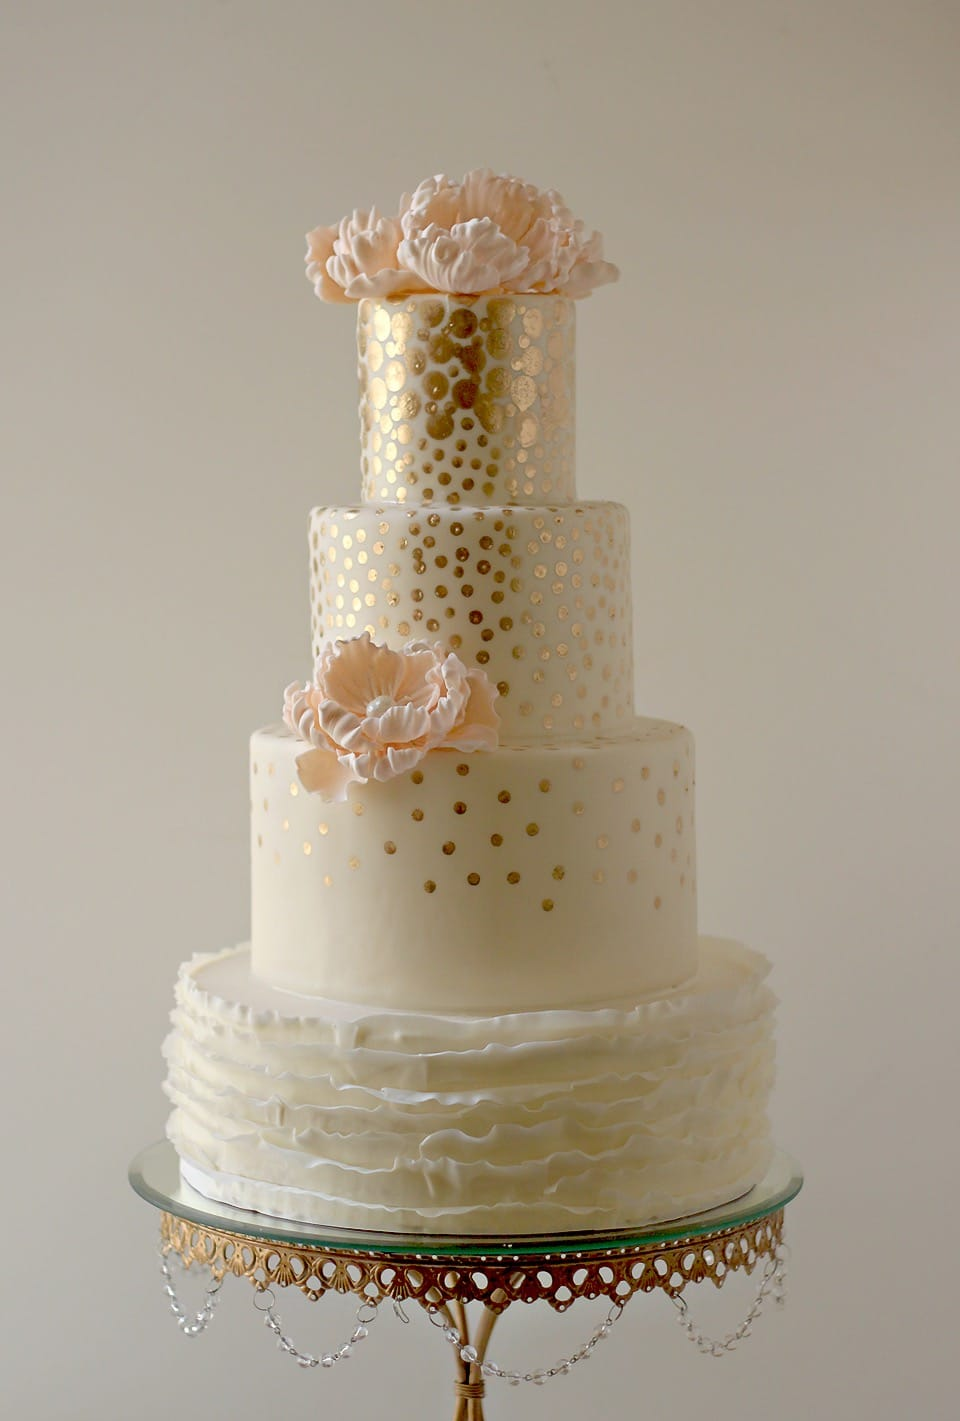 White And Gold Couture Wedding Cake (Image 20 of 20)